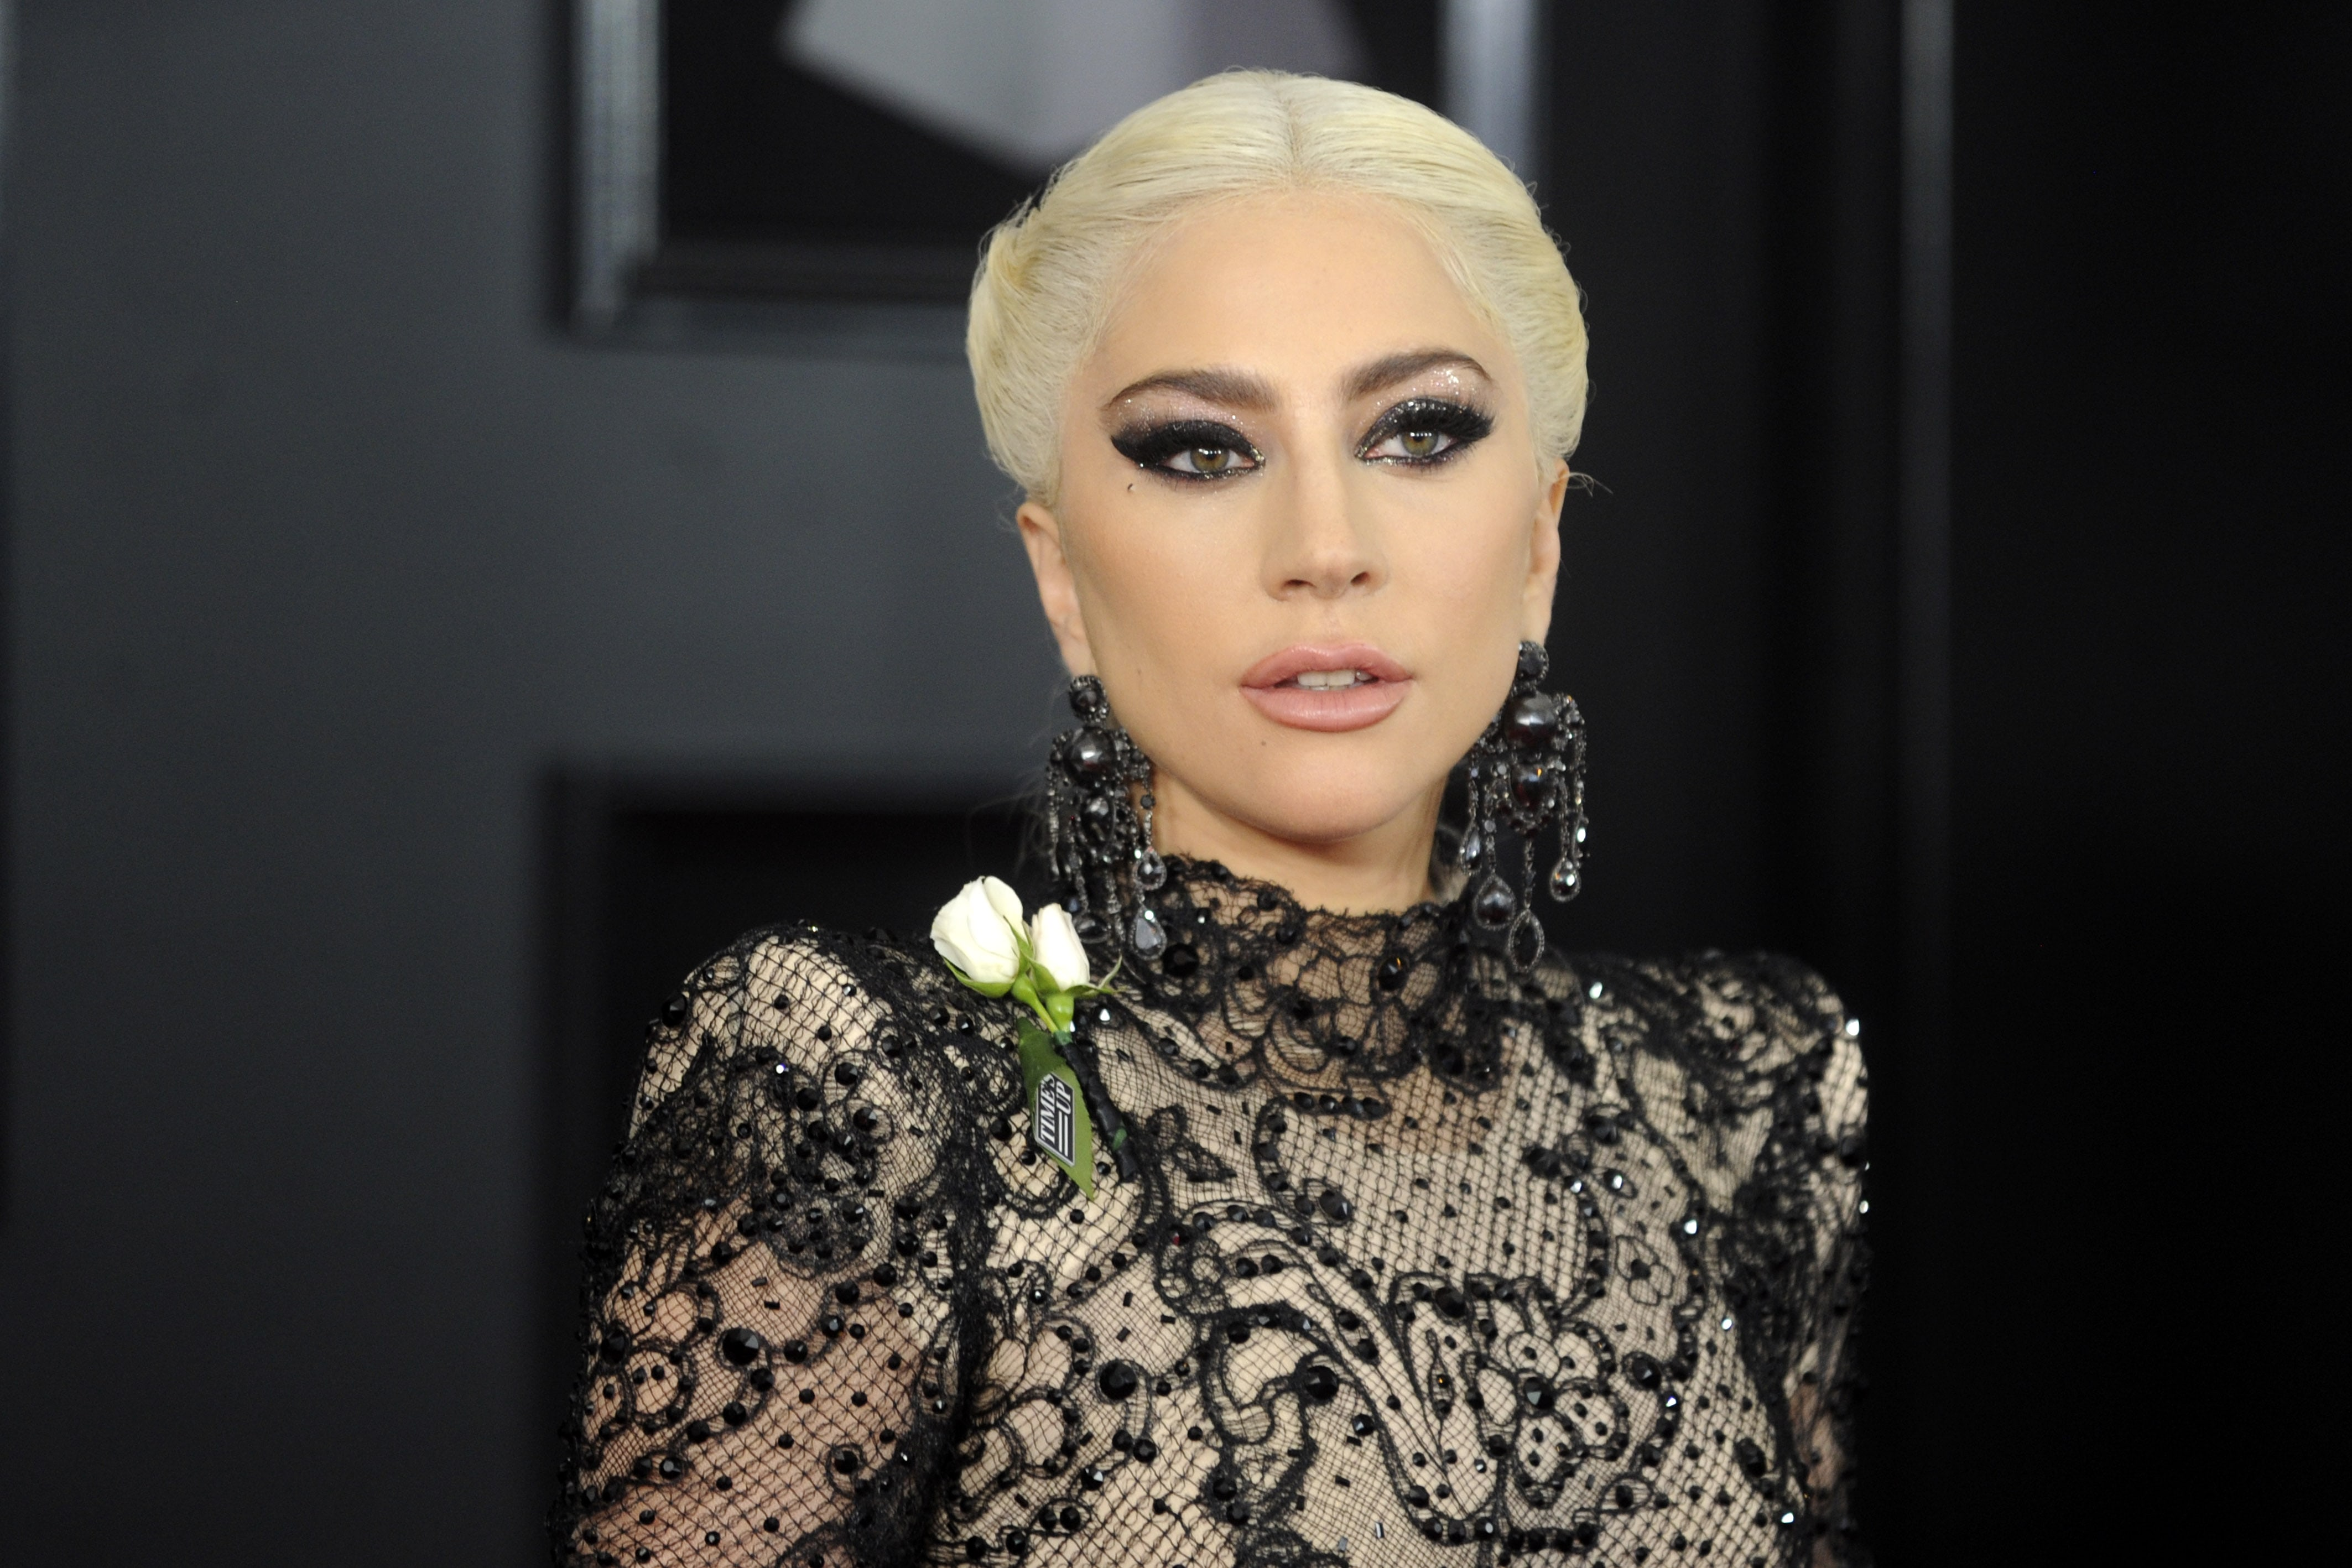 Once again, fibromyalgia gets in the way of Lady Gaga and her fans. (Photo: WENN)